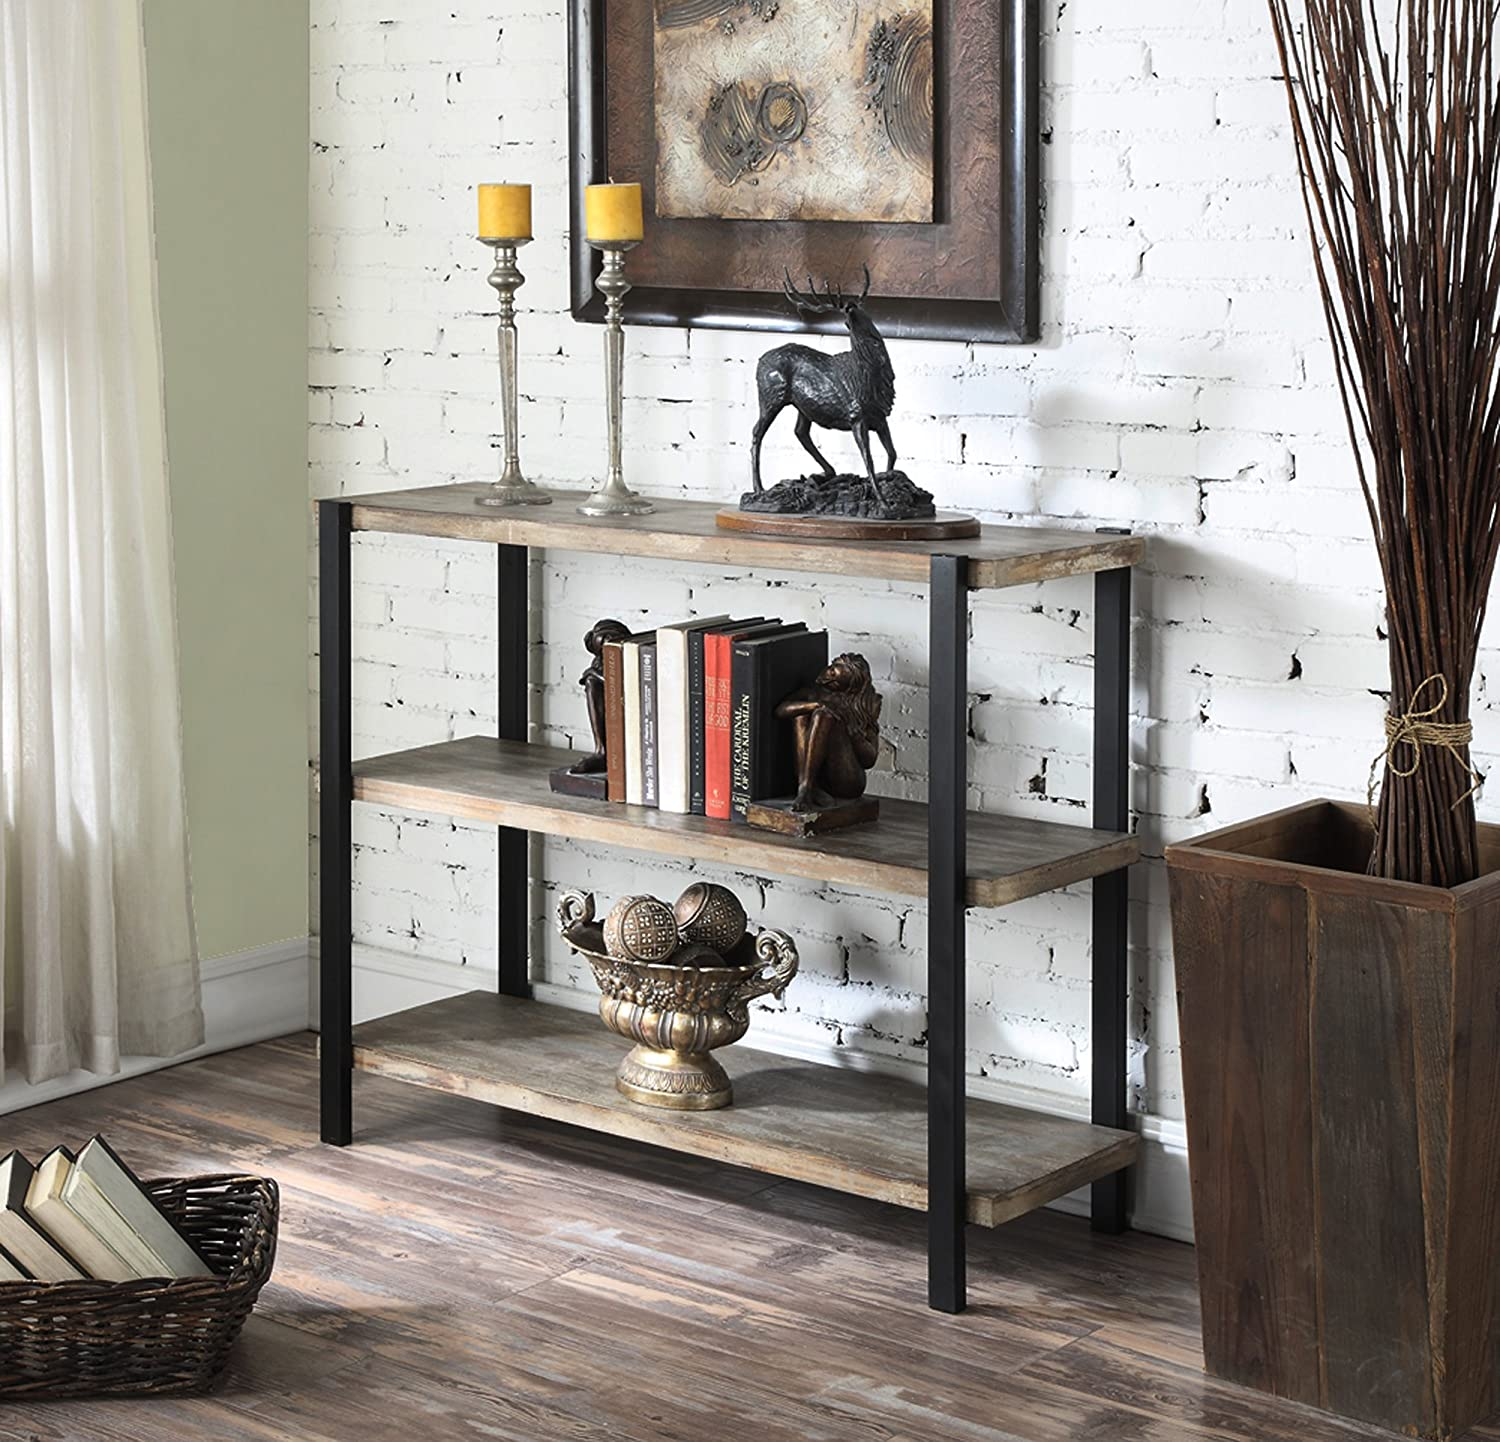 Amazon.com: Convenience Concepts Wyoming 3 Tier Console Bookcase, China Fir  Shelves: Kitchen U0026 Dining